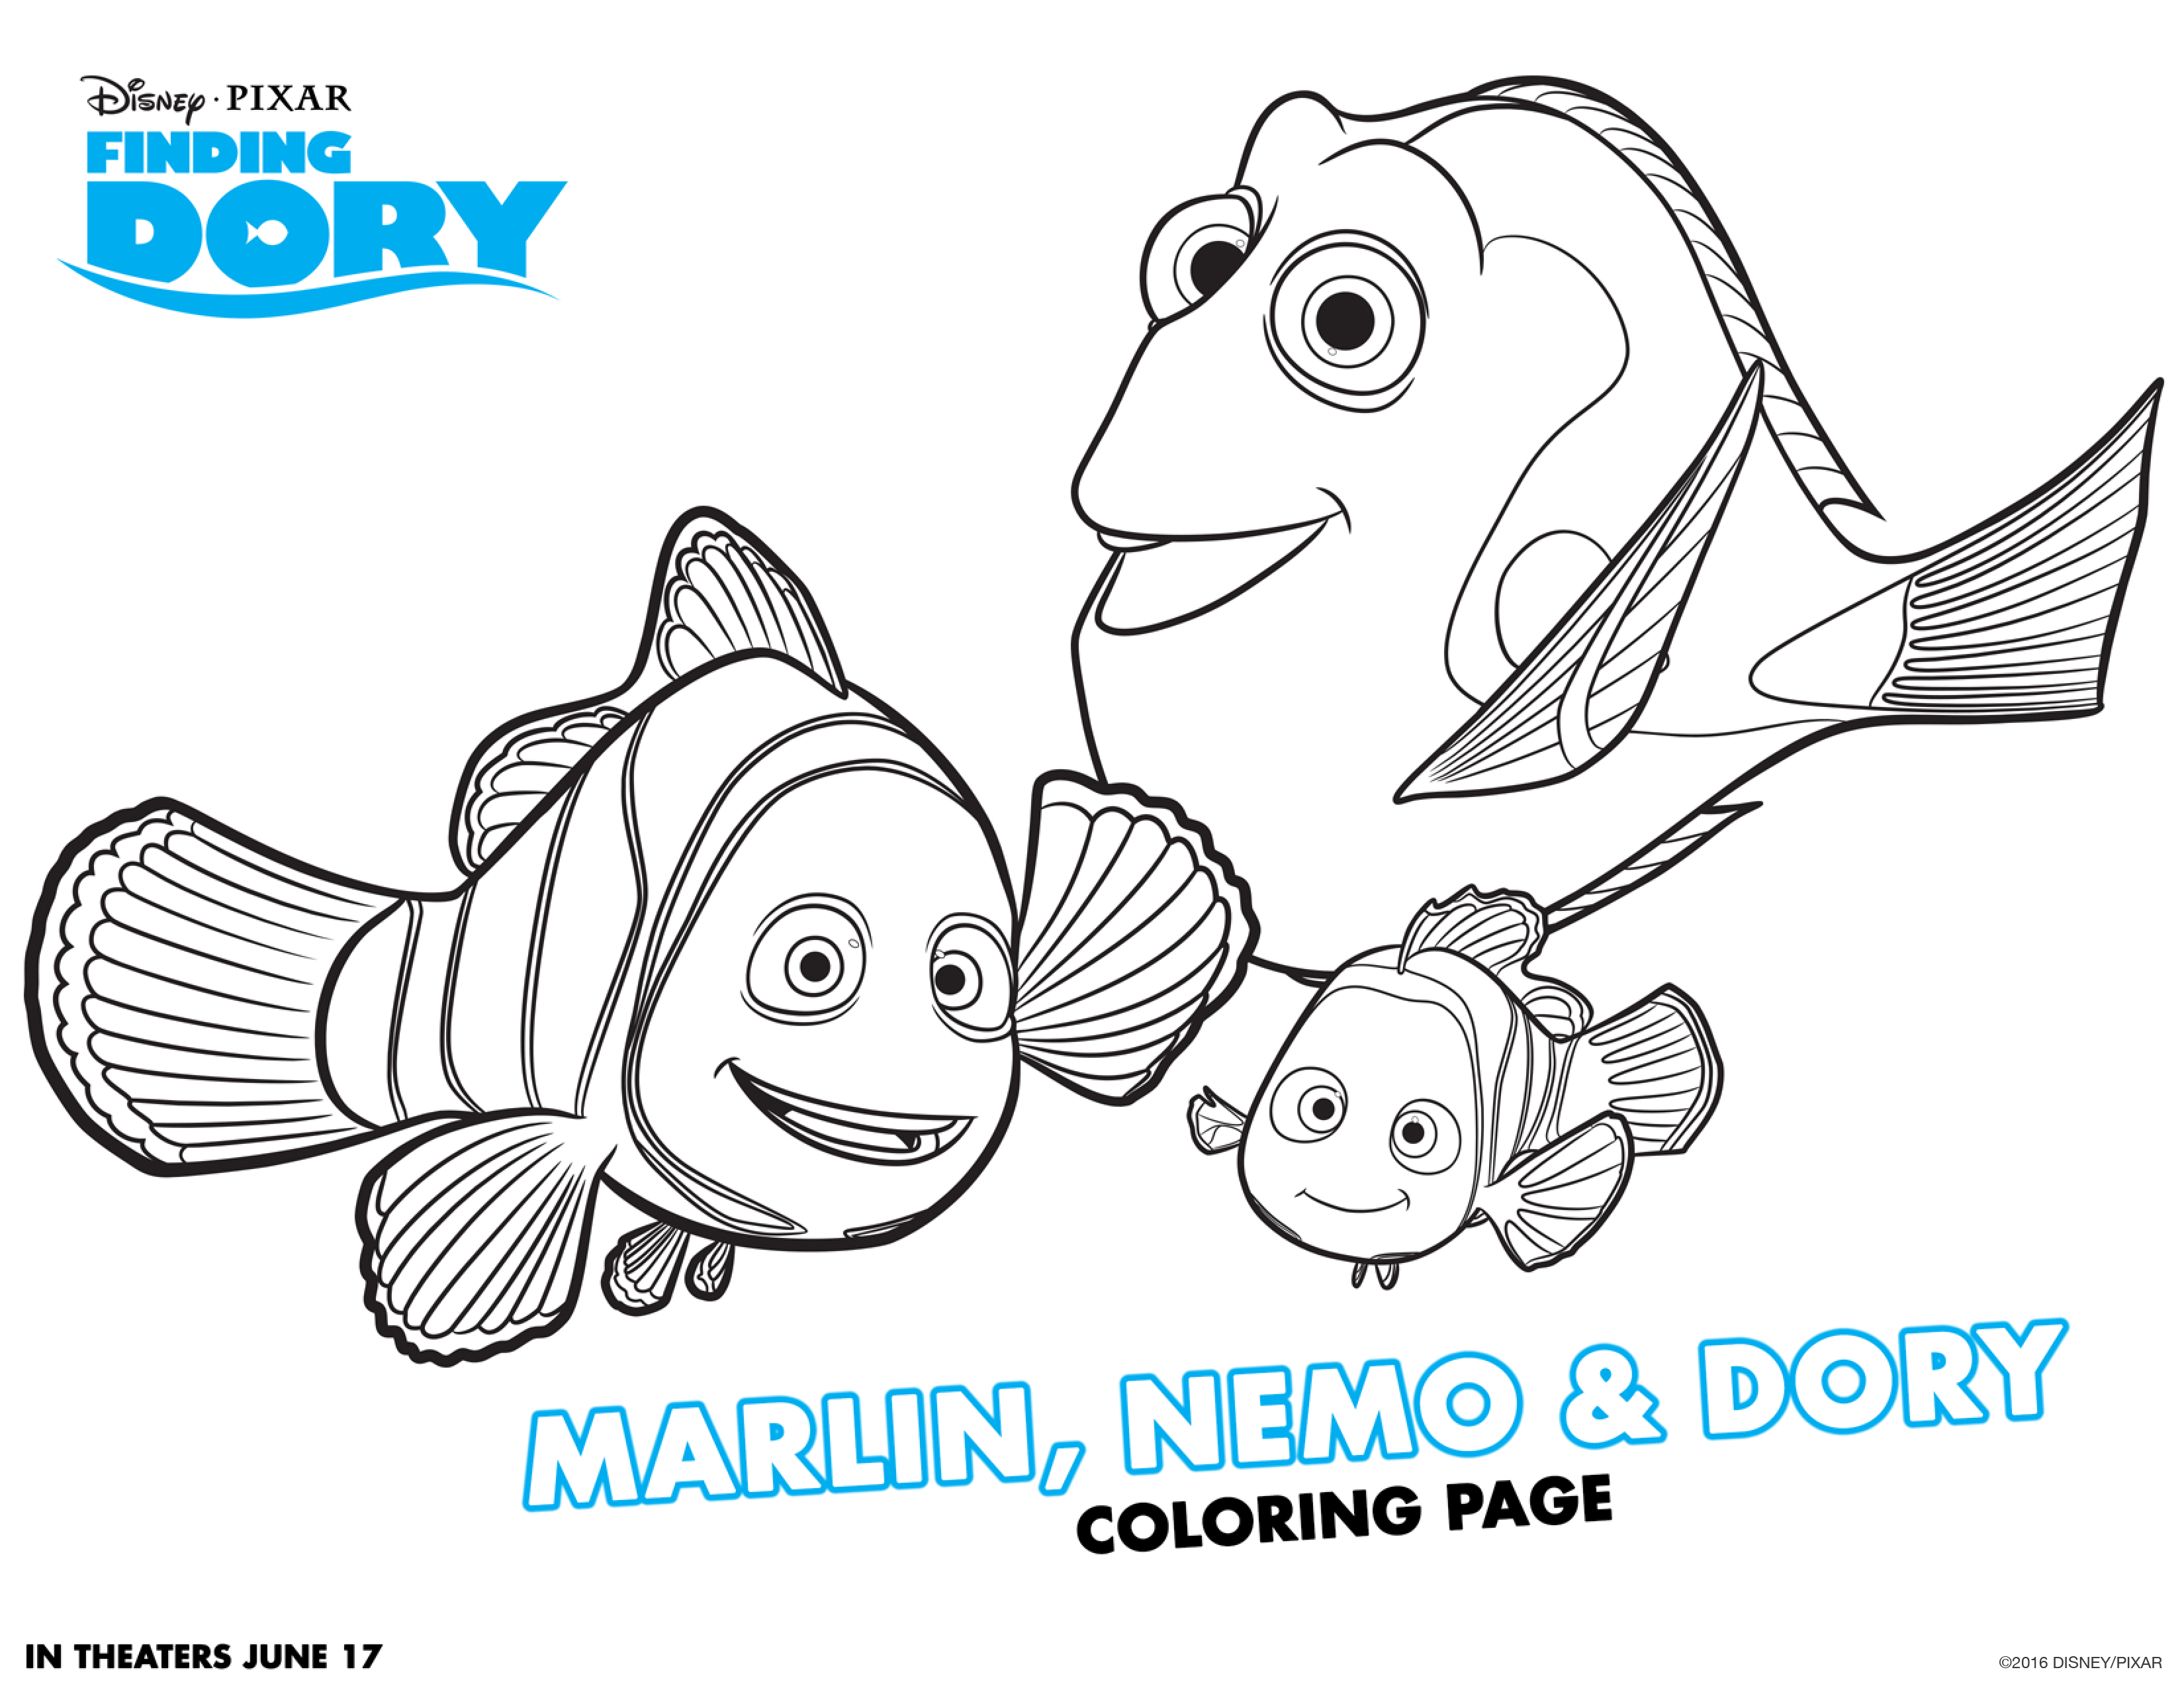 Finding Dory Coloring Sheets Nemo Coloring Pages Finding Nemo Coloring Pages Finding Dory Coloring Sheets